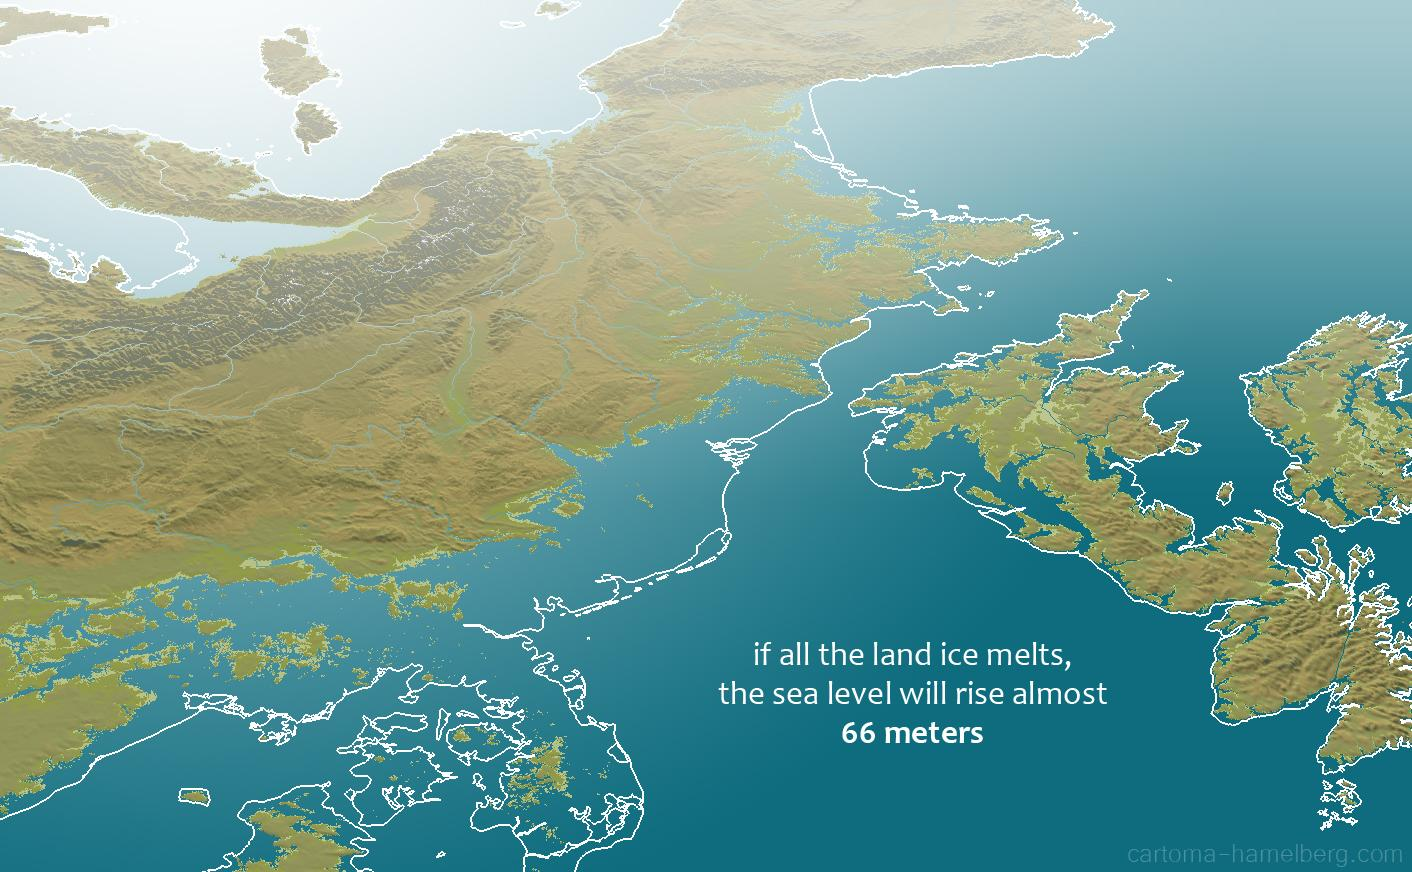 What happens if all the land ice melts?